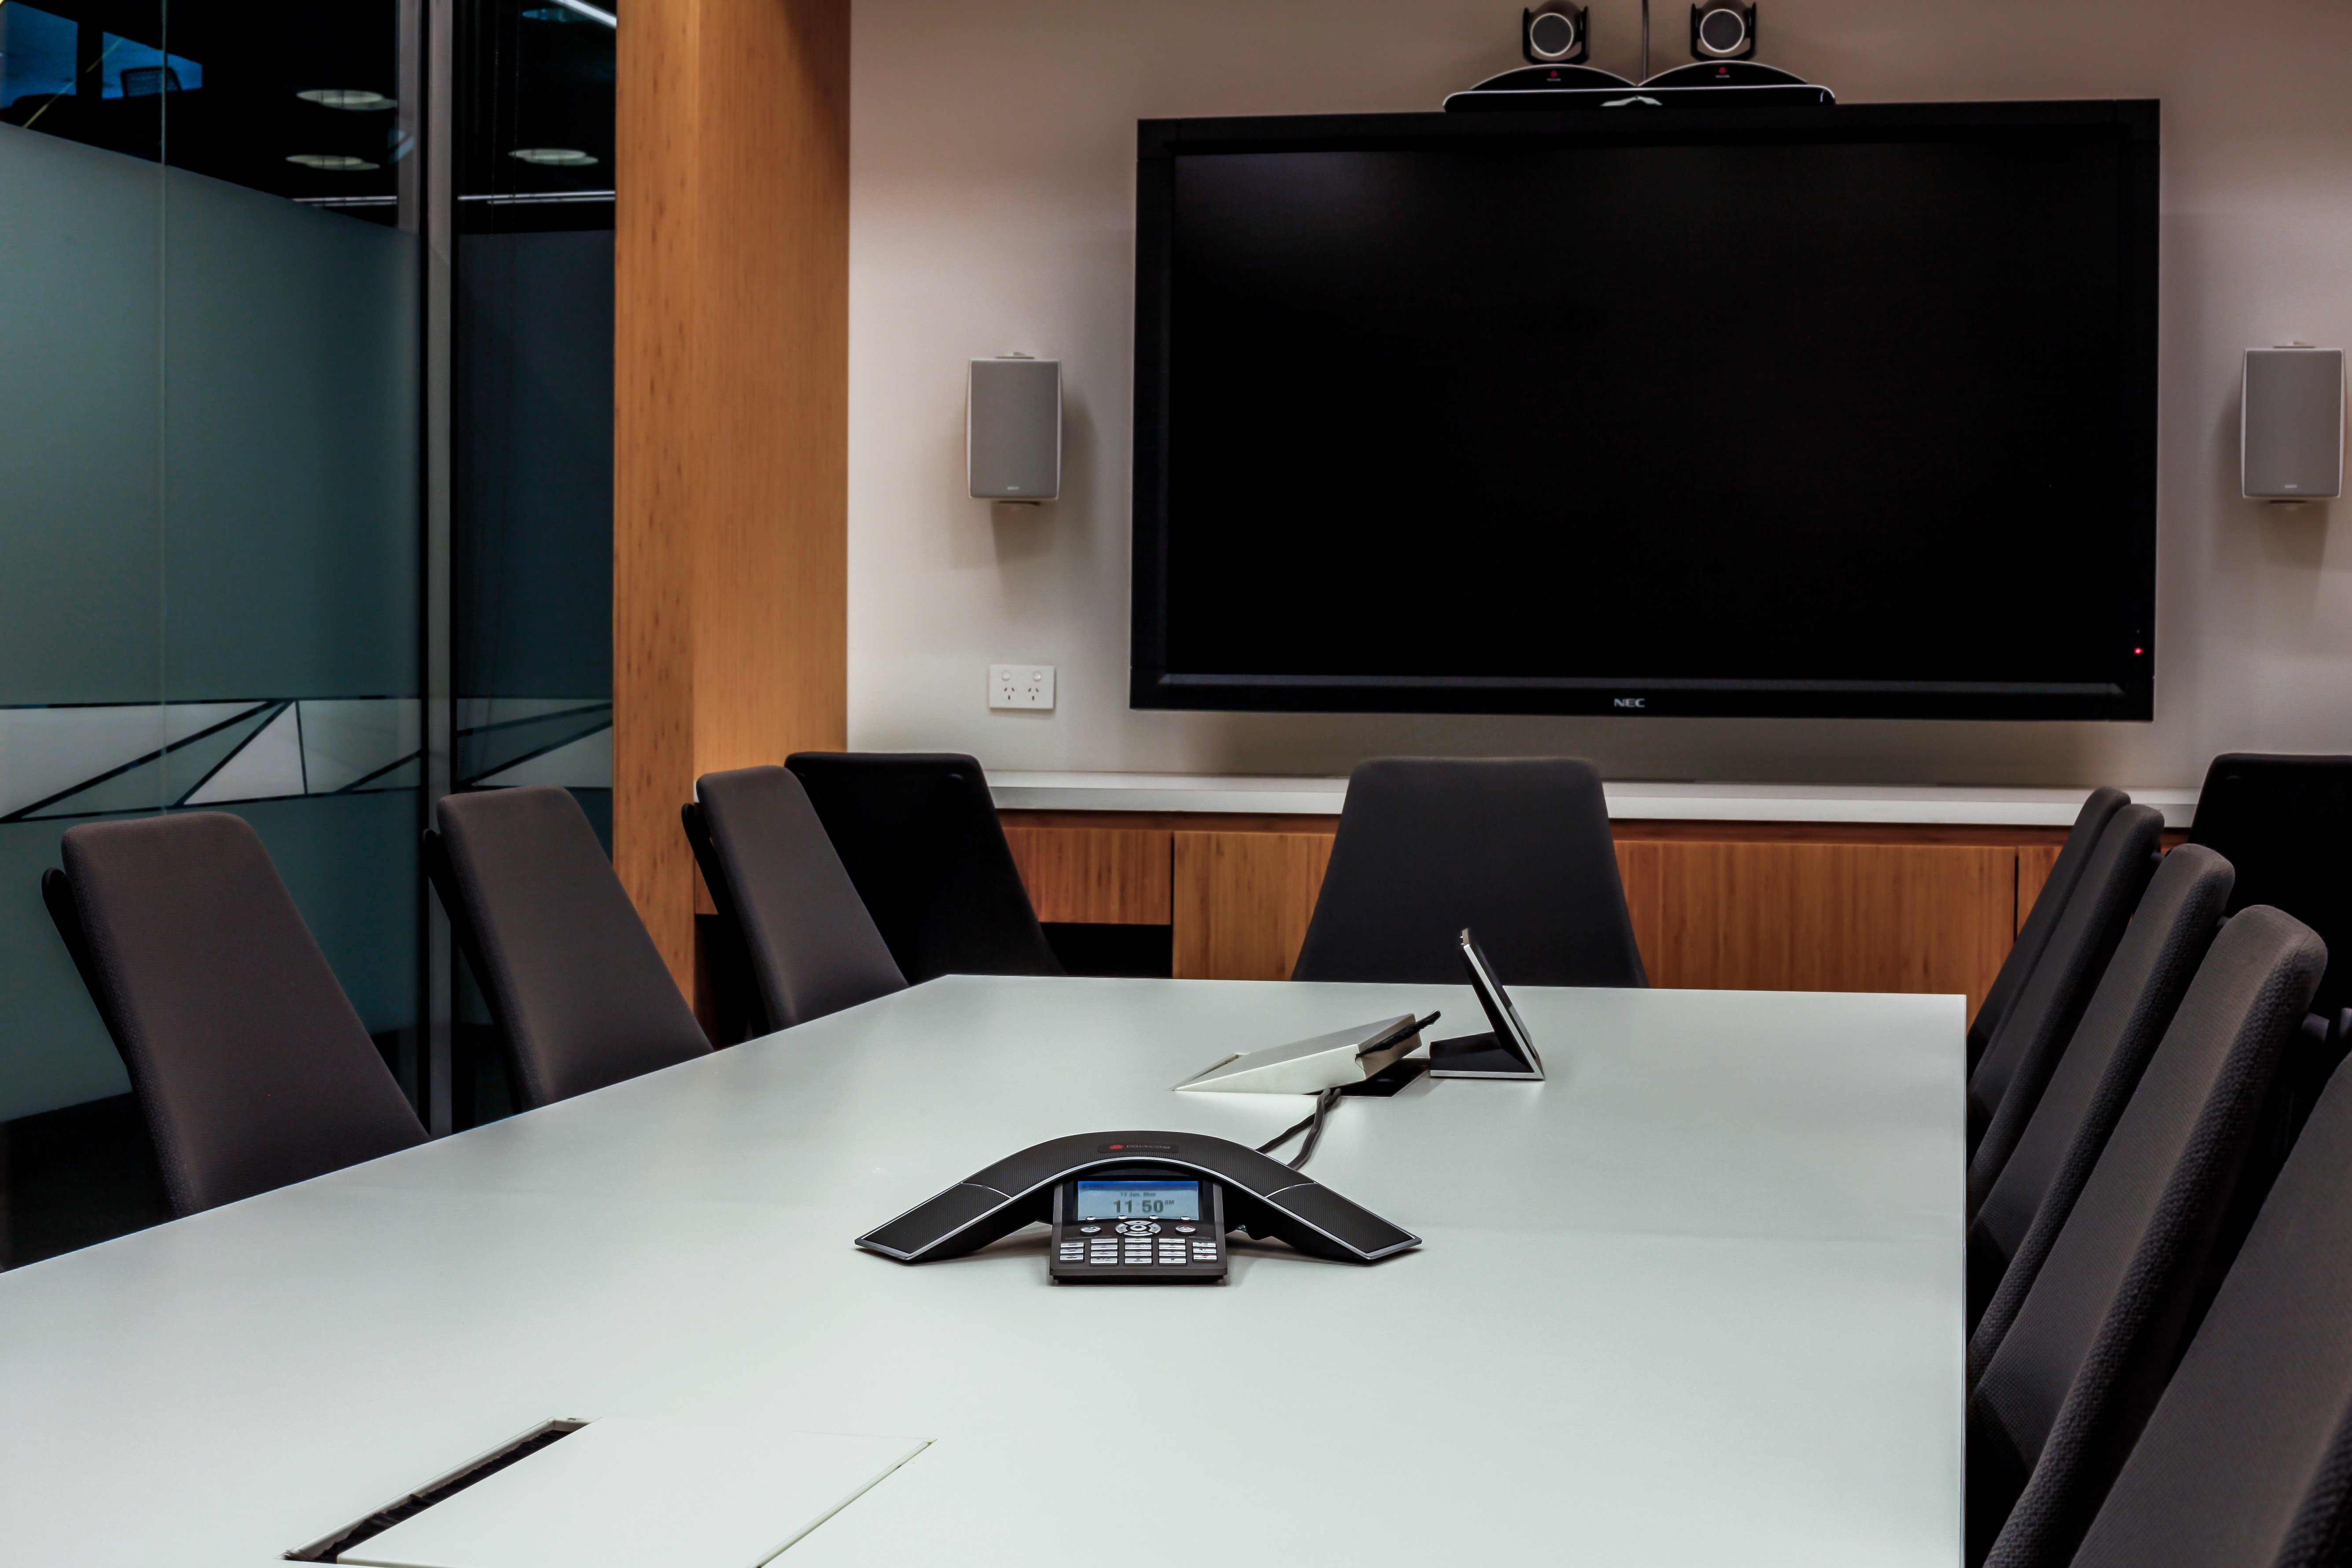 Video conference equipment in board room